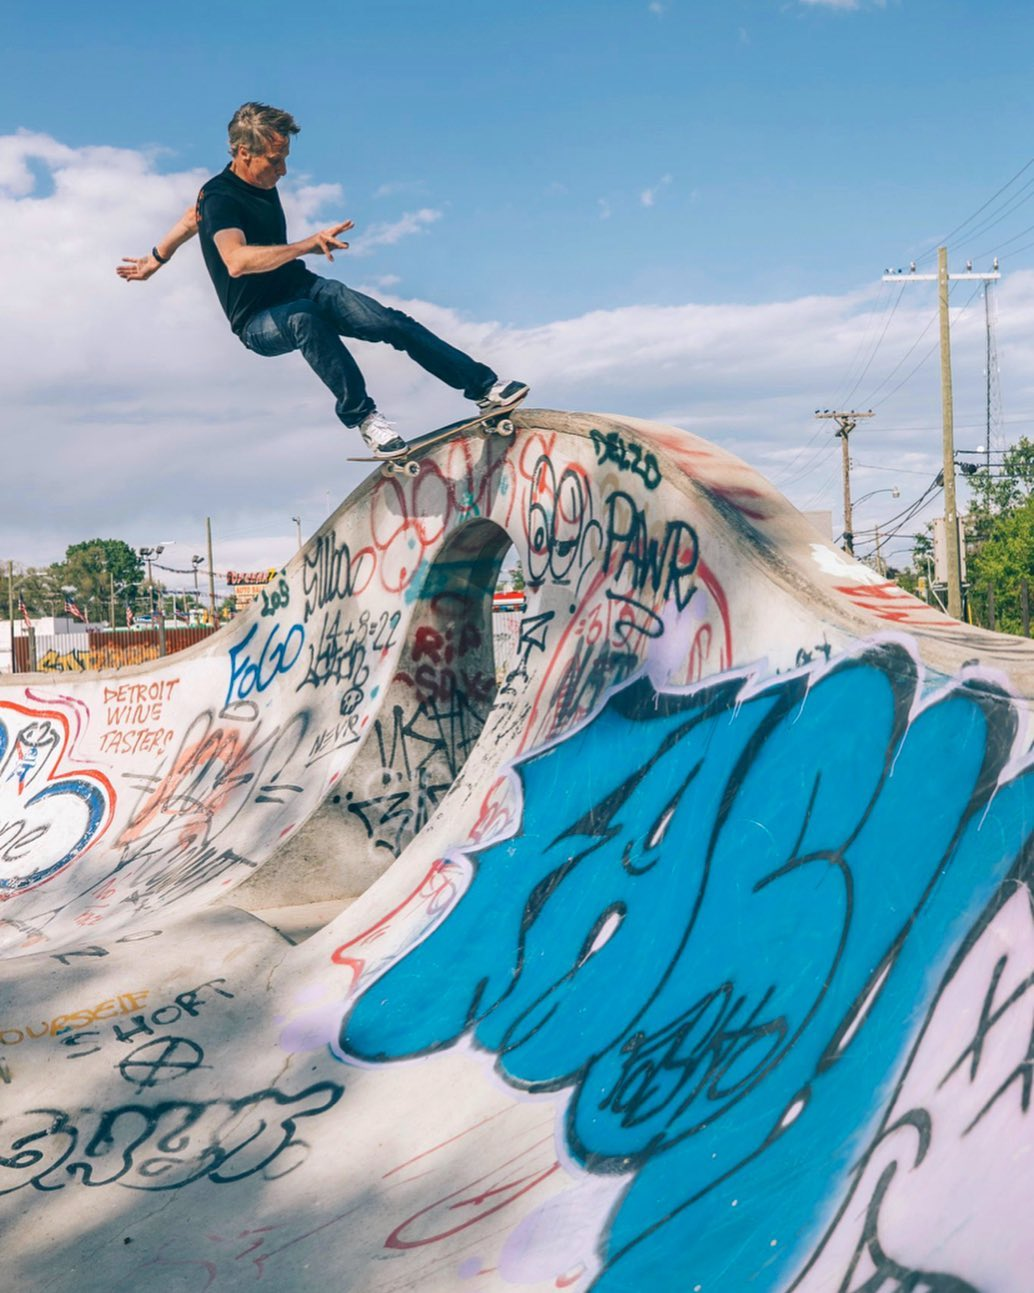 @tonyhawk gets some #detroitskateboarding action at #rideitsculpturepark over the weekend